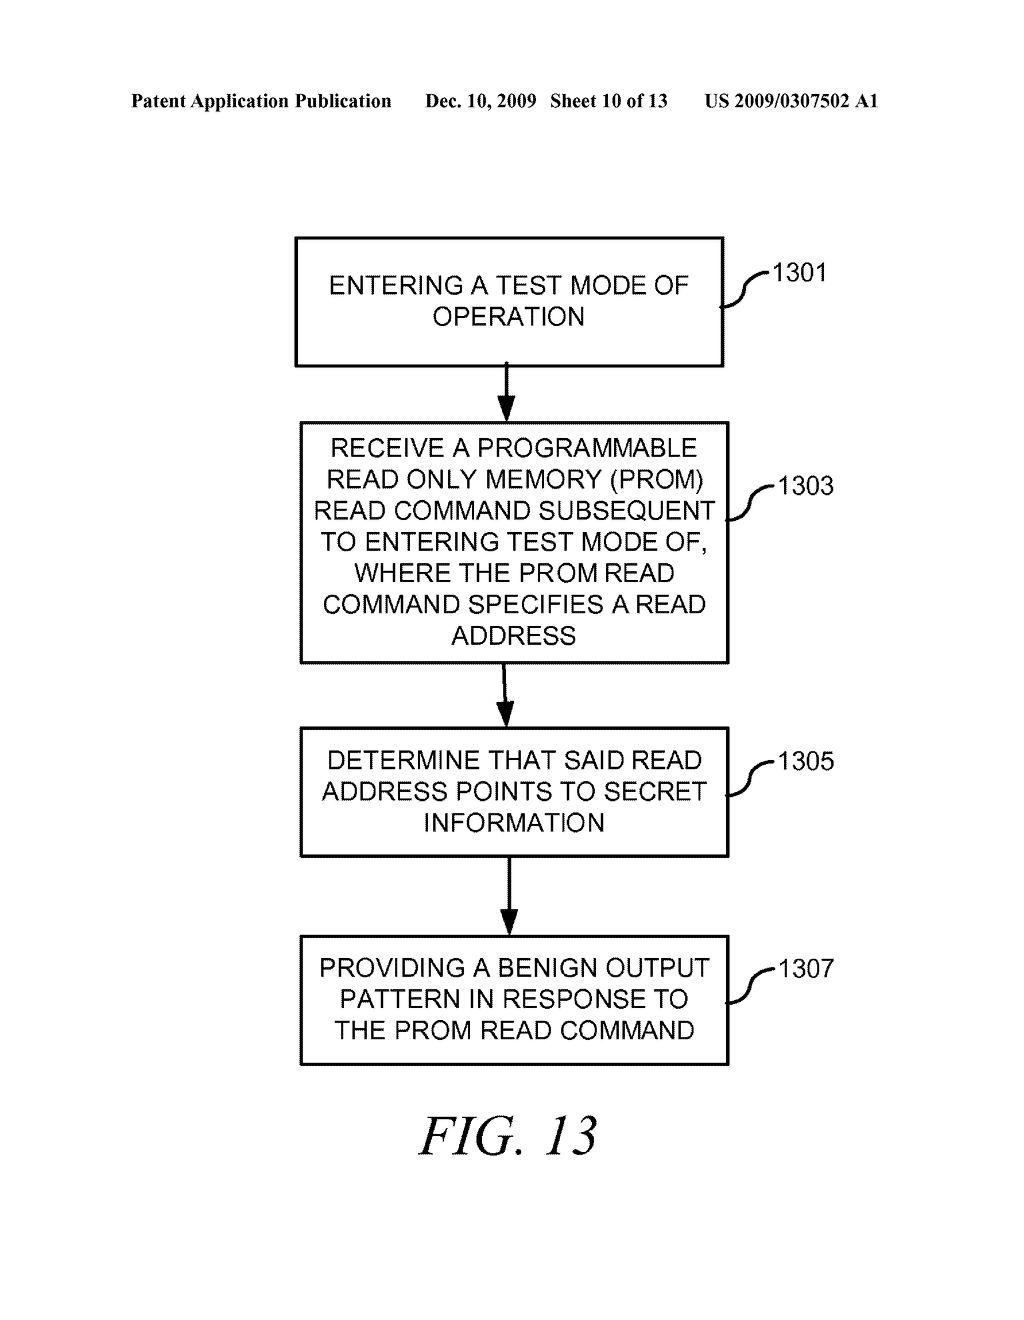 METHOD AND APPARATUS FOR SECURING DIGITAL INFORMATION ON AN INTEGRATED CIRCUIT READ ONLY MEMORY DURING TEST OPERATING MODES - diagram, schematic, and image 11